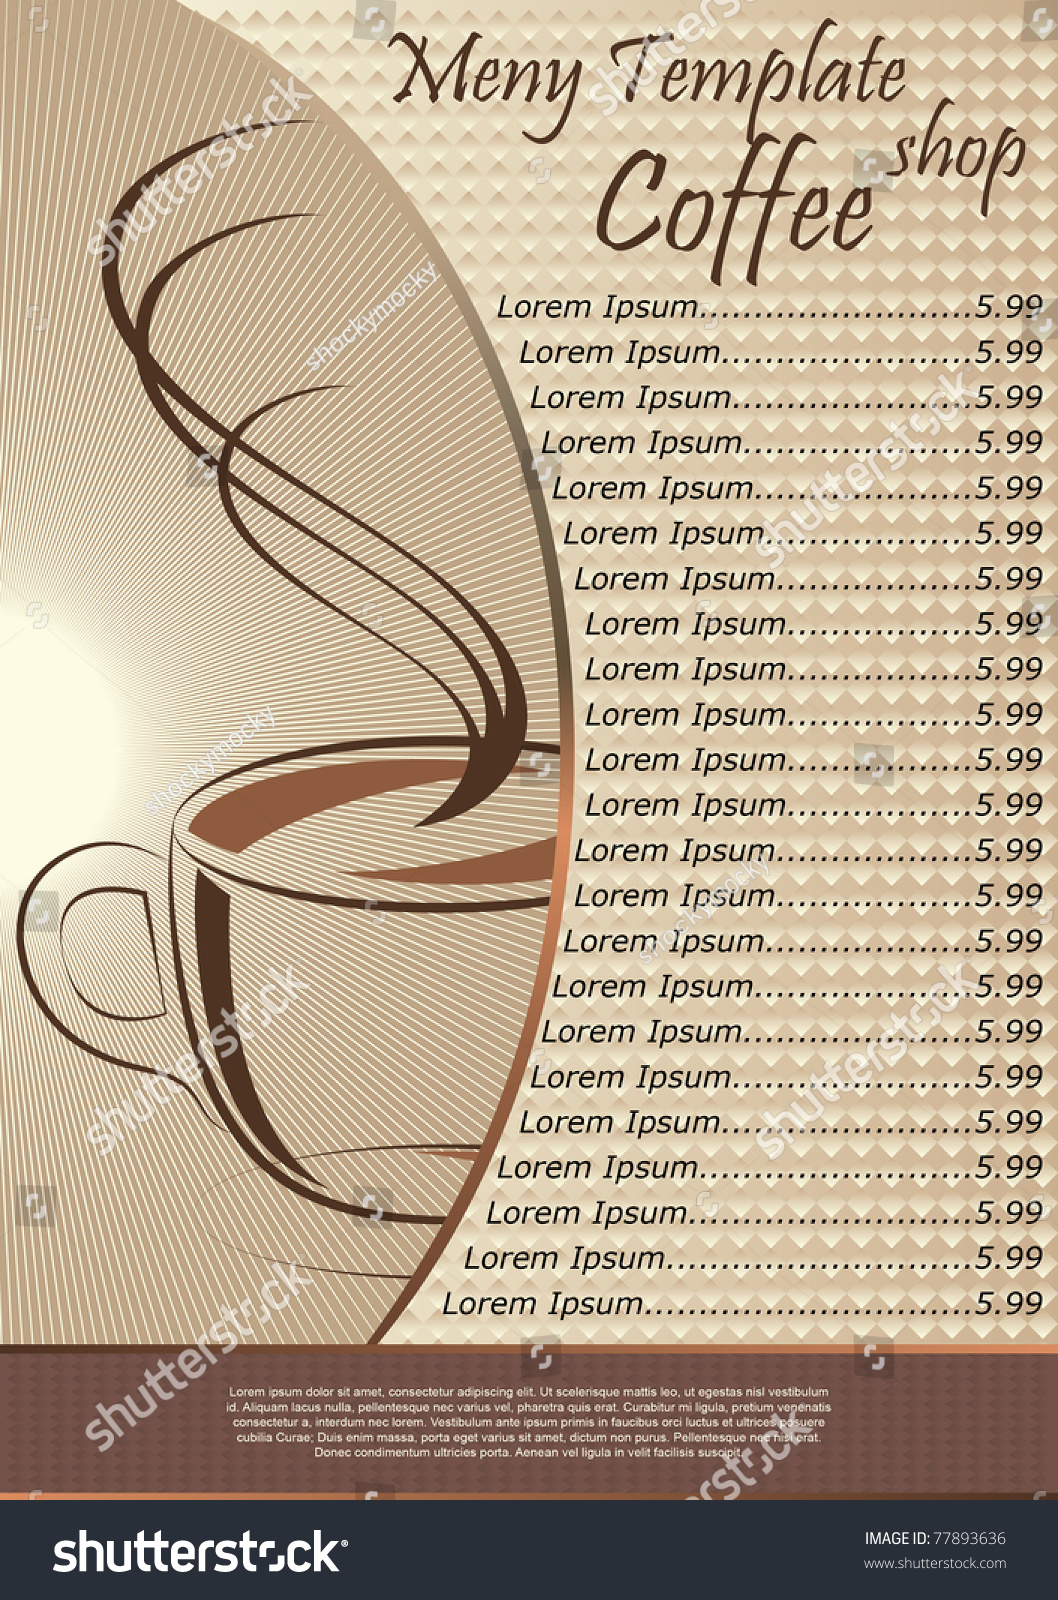 coffee price list template - coffee shop menu template vector illustration 77893636